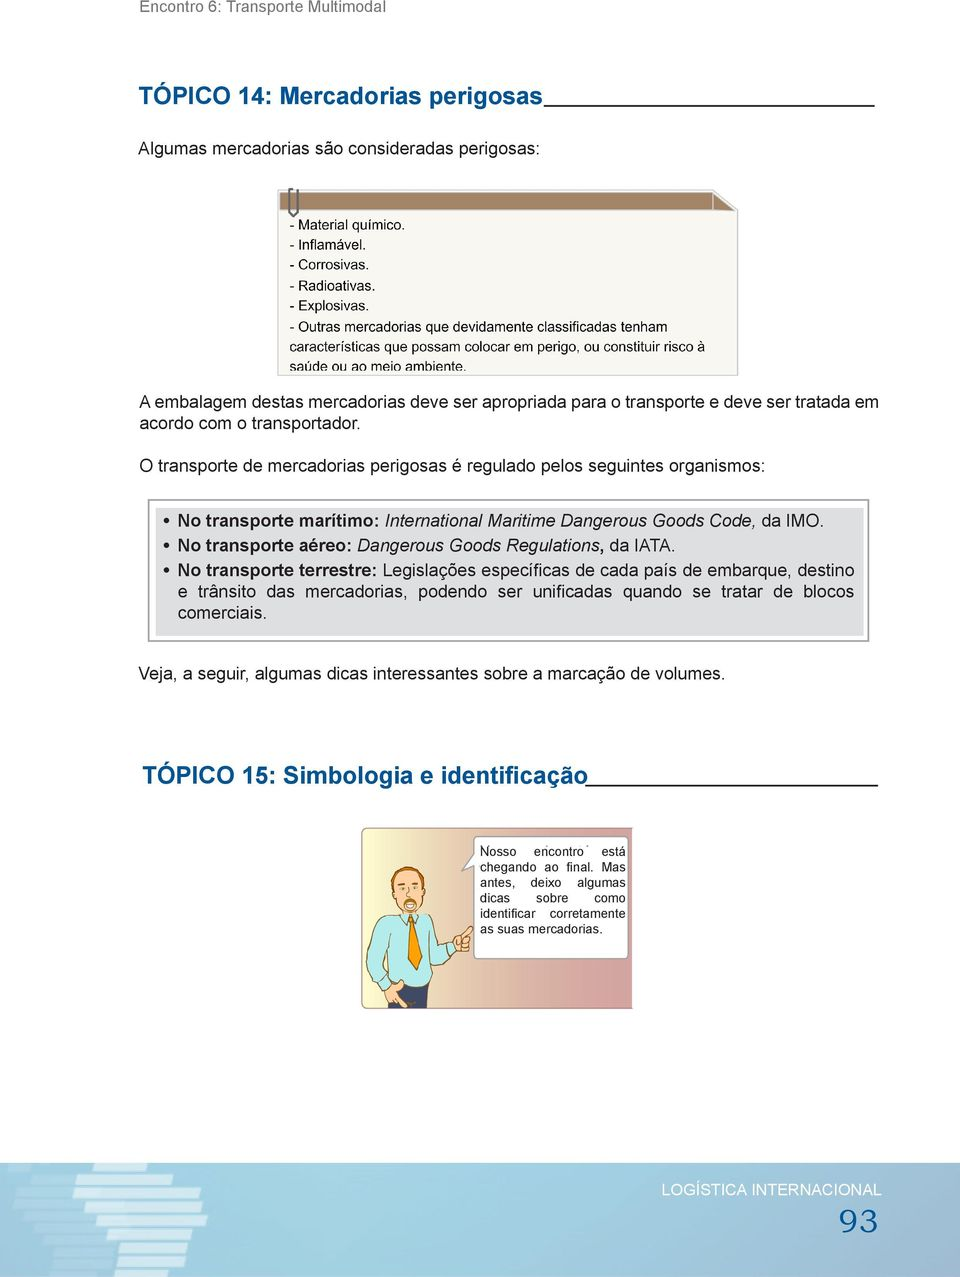 No transporte aéreo: Dangerous Goods Regulations, da IATA.